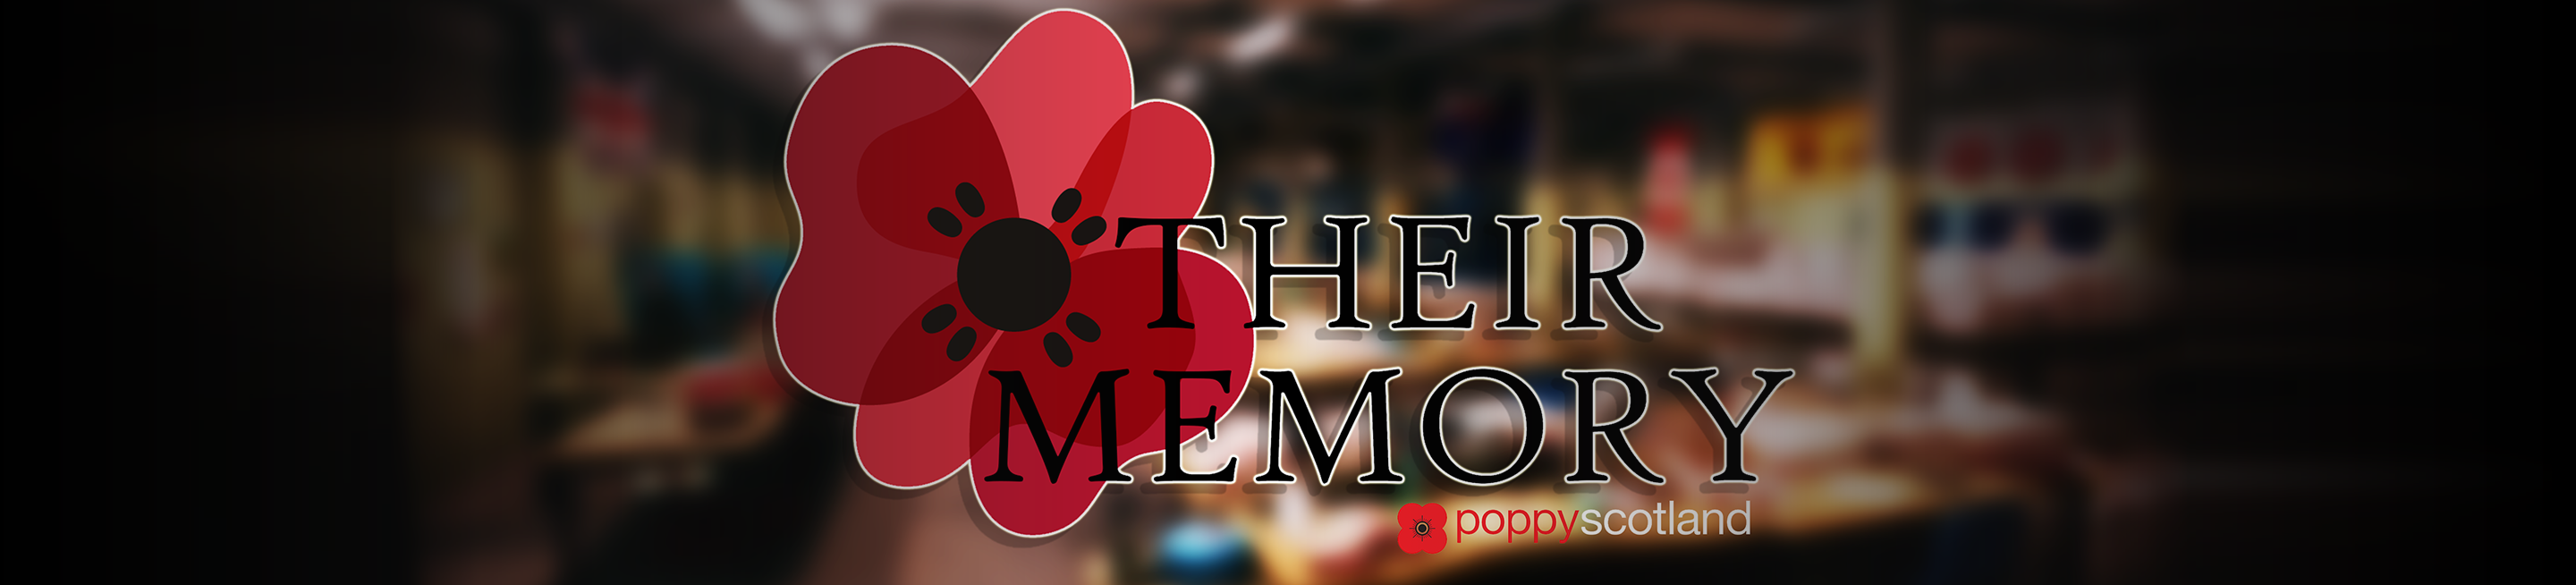 Poppyscotland: Their Memory